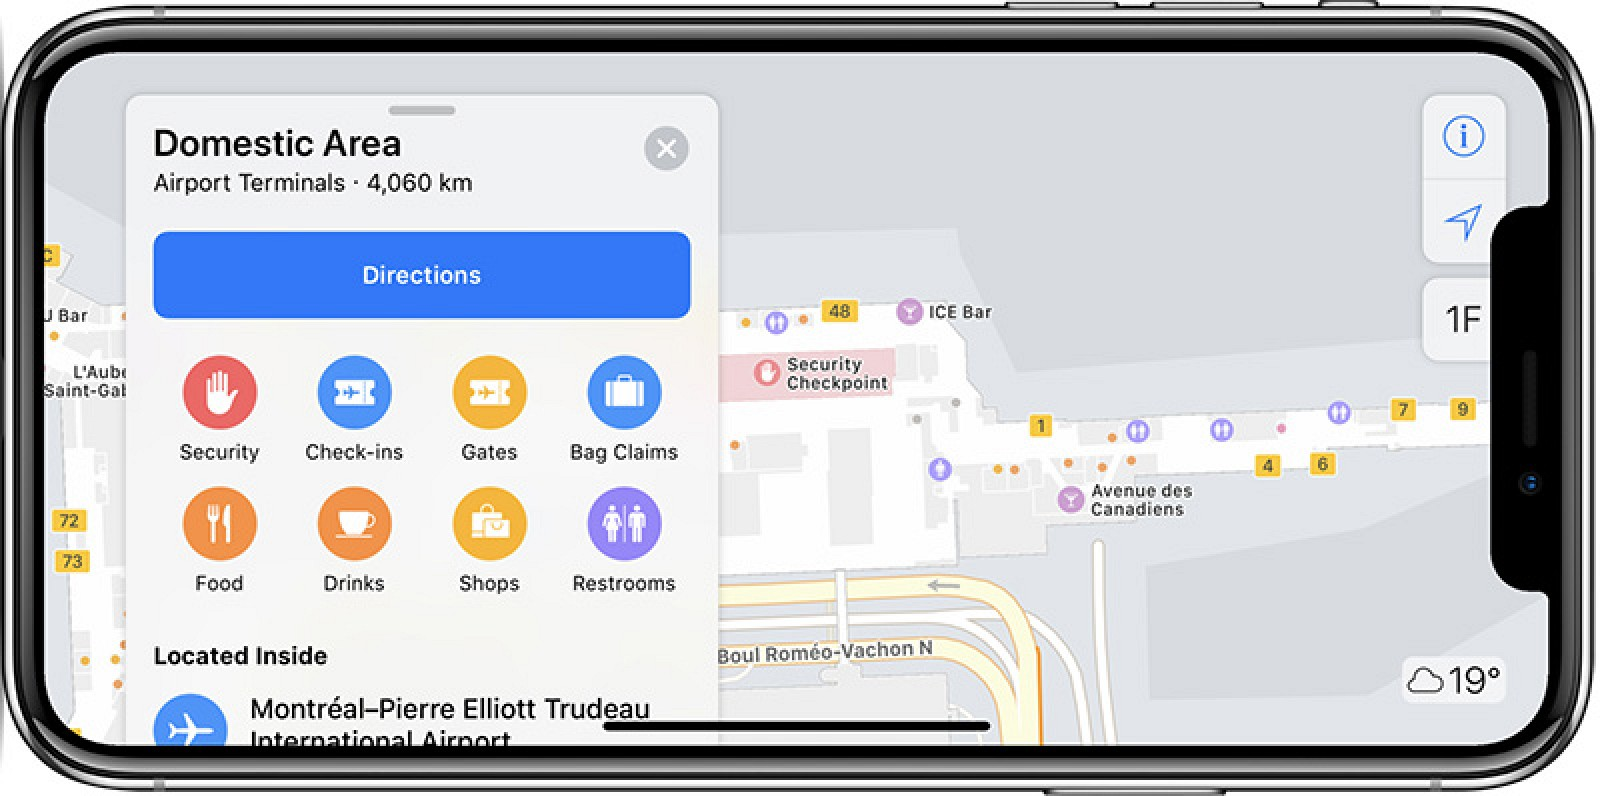 Apple Expands Transit Directions to New Areas, Introduces More ... on indoor landscape, indoor waterpark, indoor map depth, indoor mobile, indoor home, indoor cloud point,